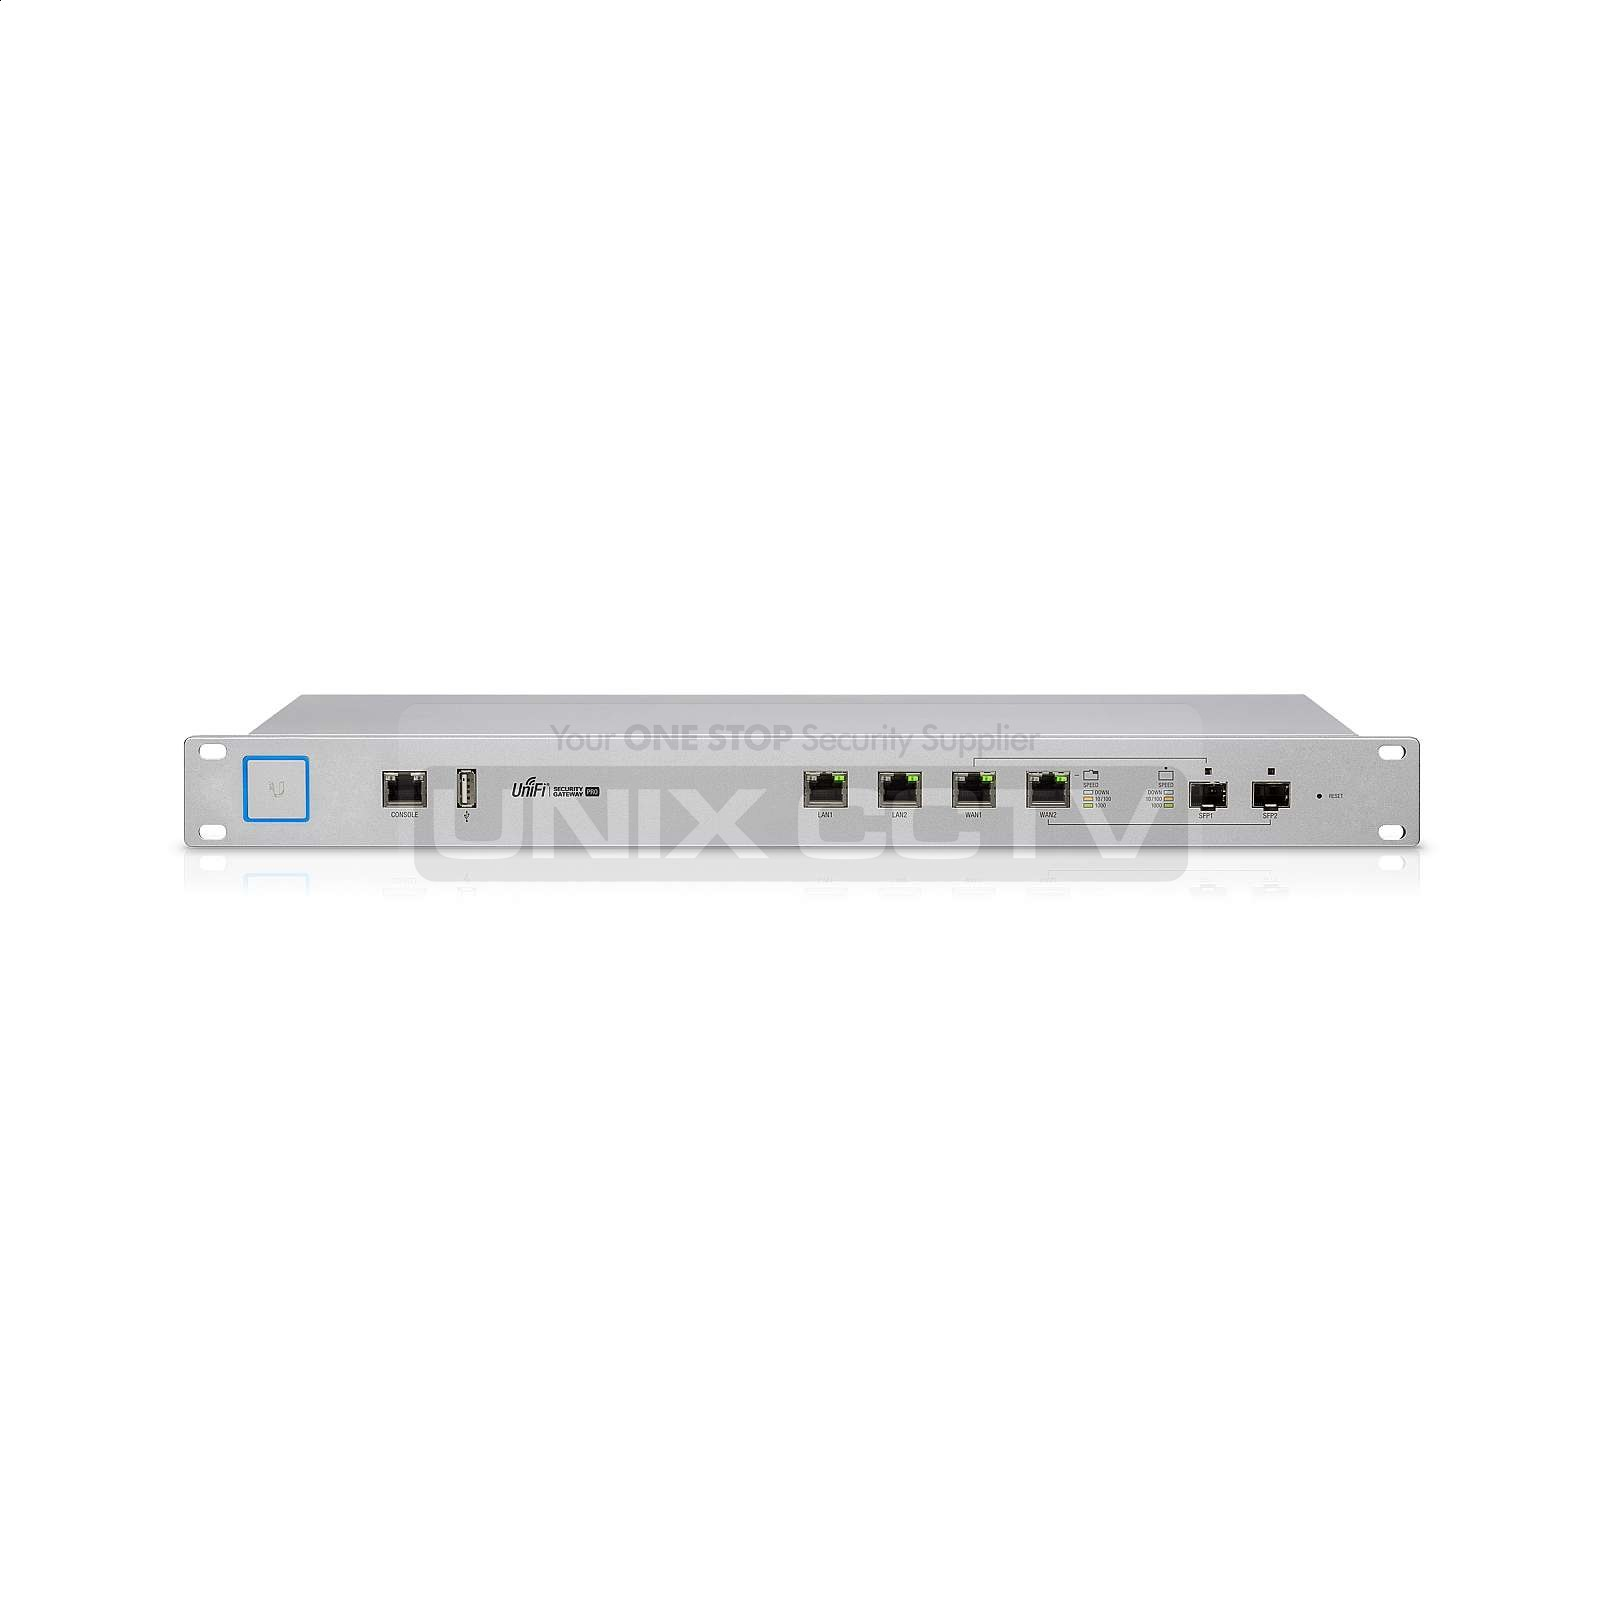 Ubiquiti® USG-PRO-4 | UniFi® Enterprise Security Gateway Router with  Gigabit Ethernet, 2 SFP Ports, Rack-mounting Capability